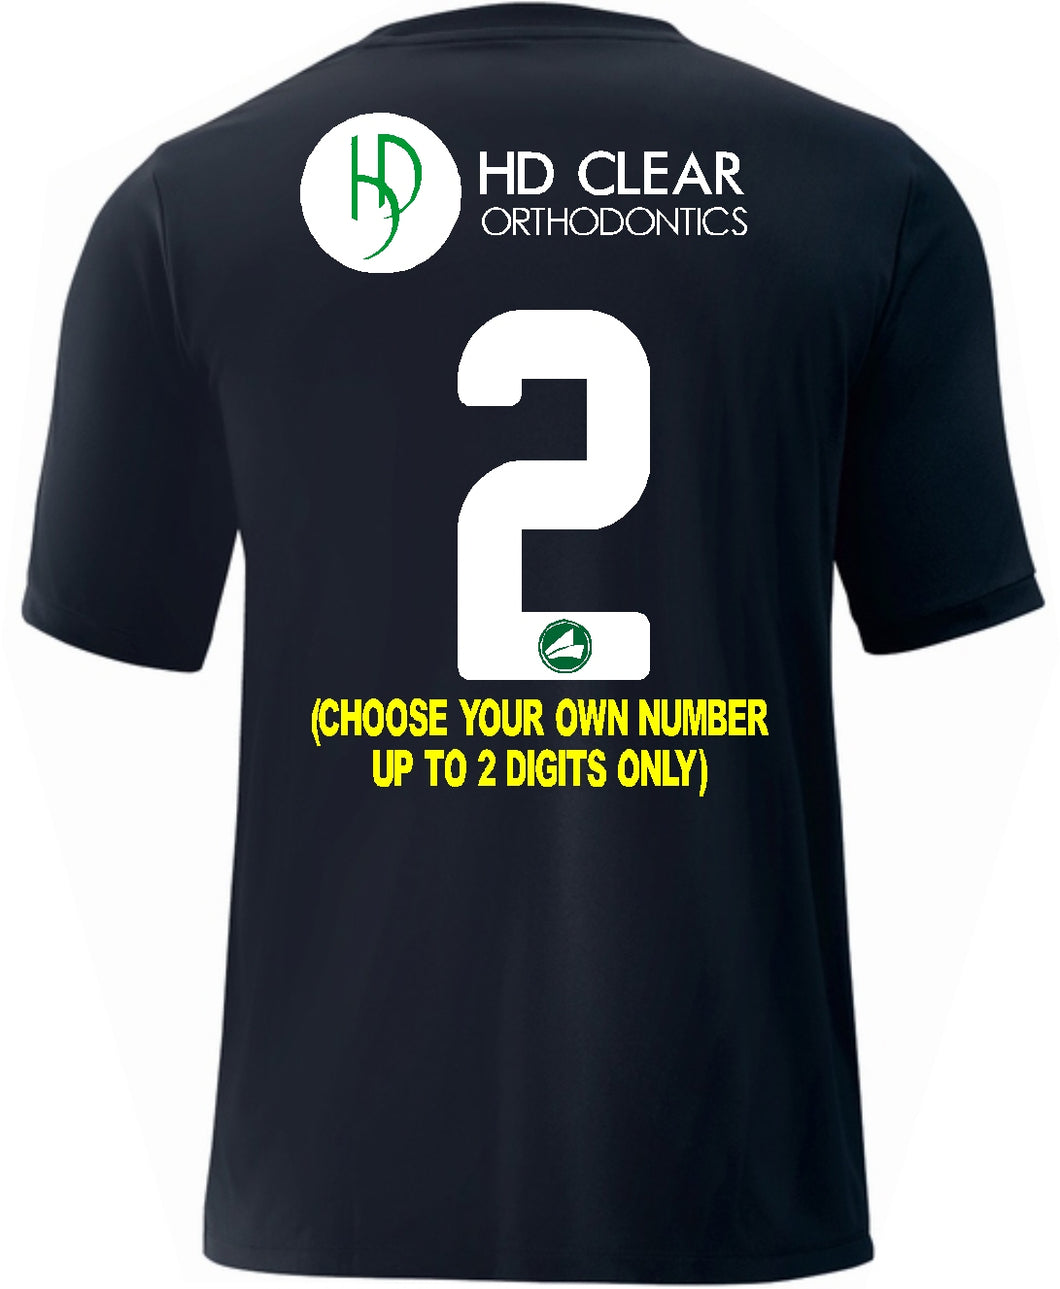 Adult JAKO CAYS HD Clear Back Black Jersey CAY1111HDBB